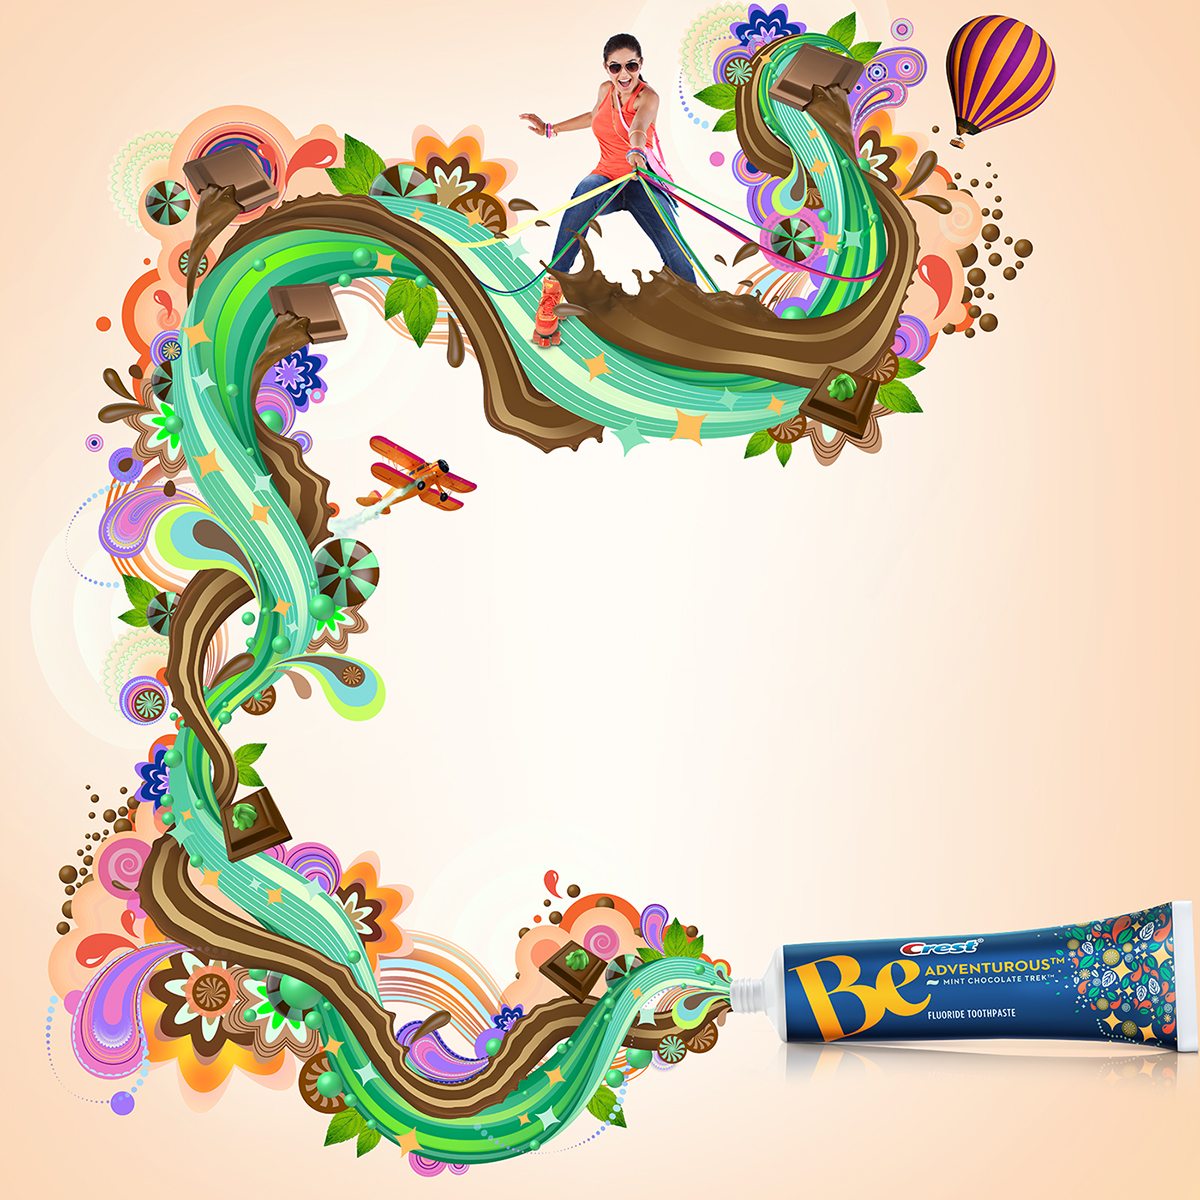 Procter & Gamble's Crest Be Toothpaste Campaign on Behance.